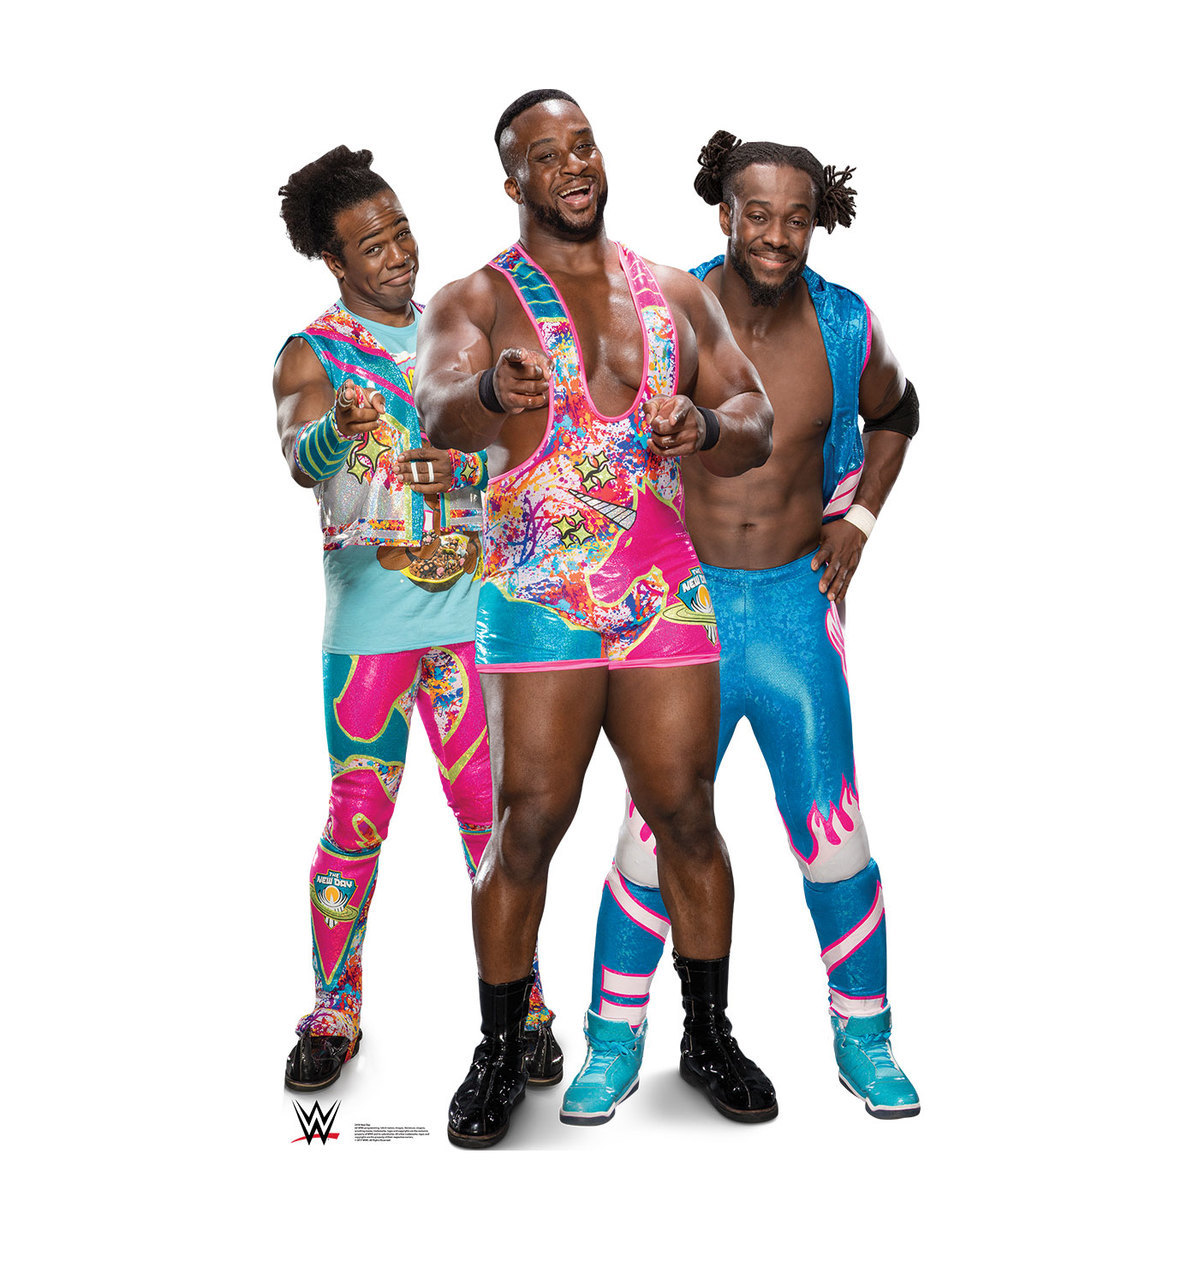 The New Day WWE Wrestlers Lifesize Standup Standee Cardboard Cutout Poster